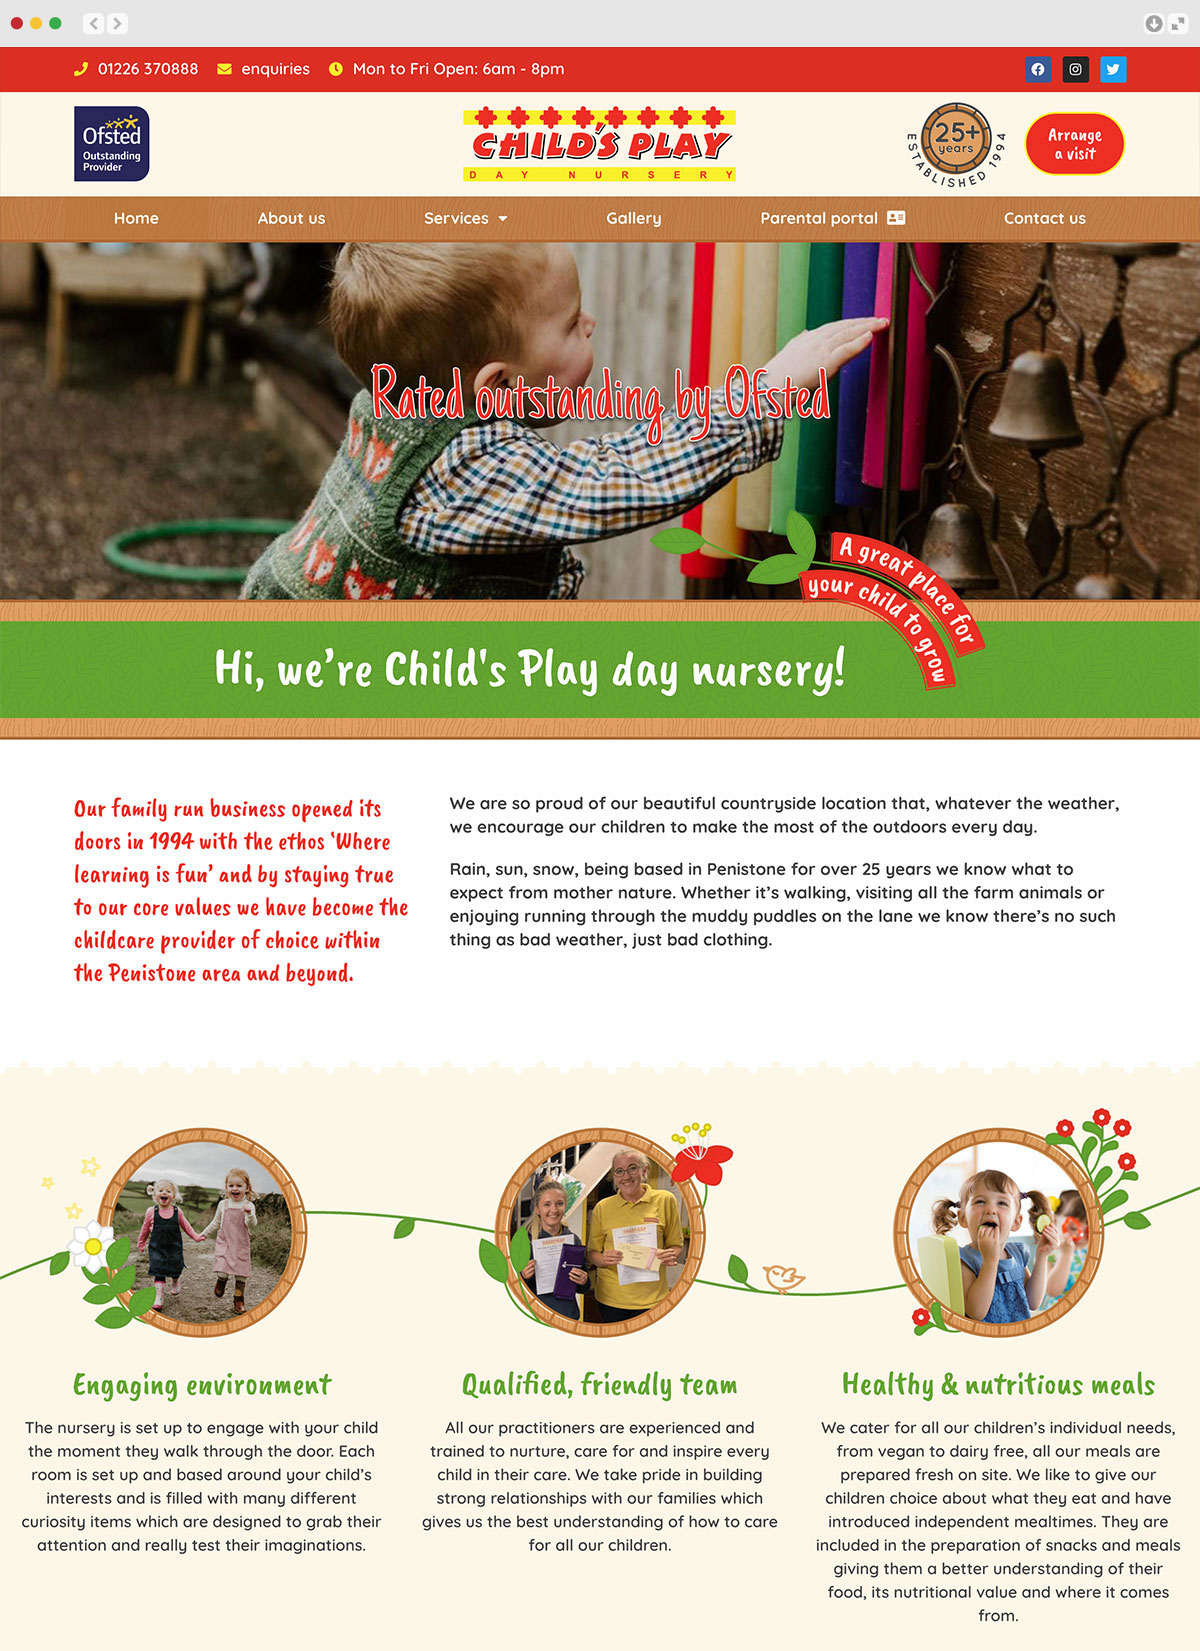 Childs Play Day Nursery Elbowroom Graphics